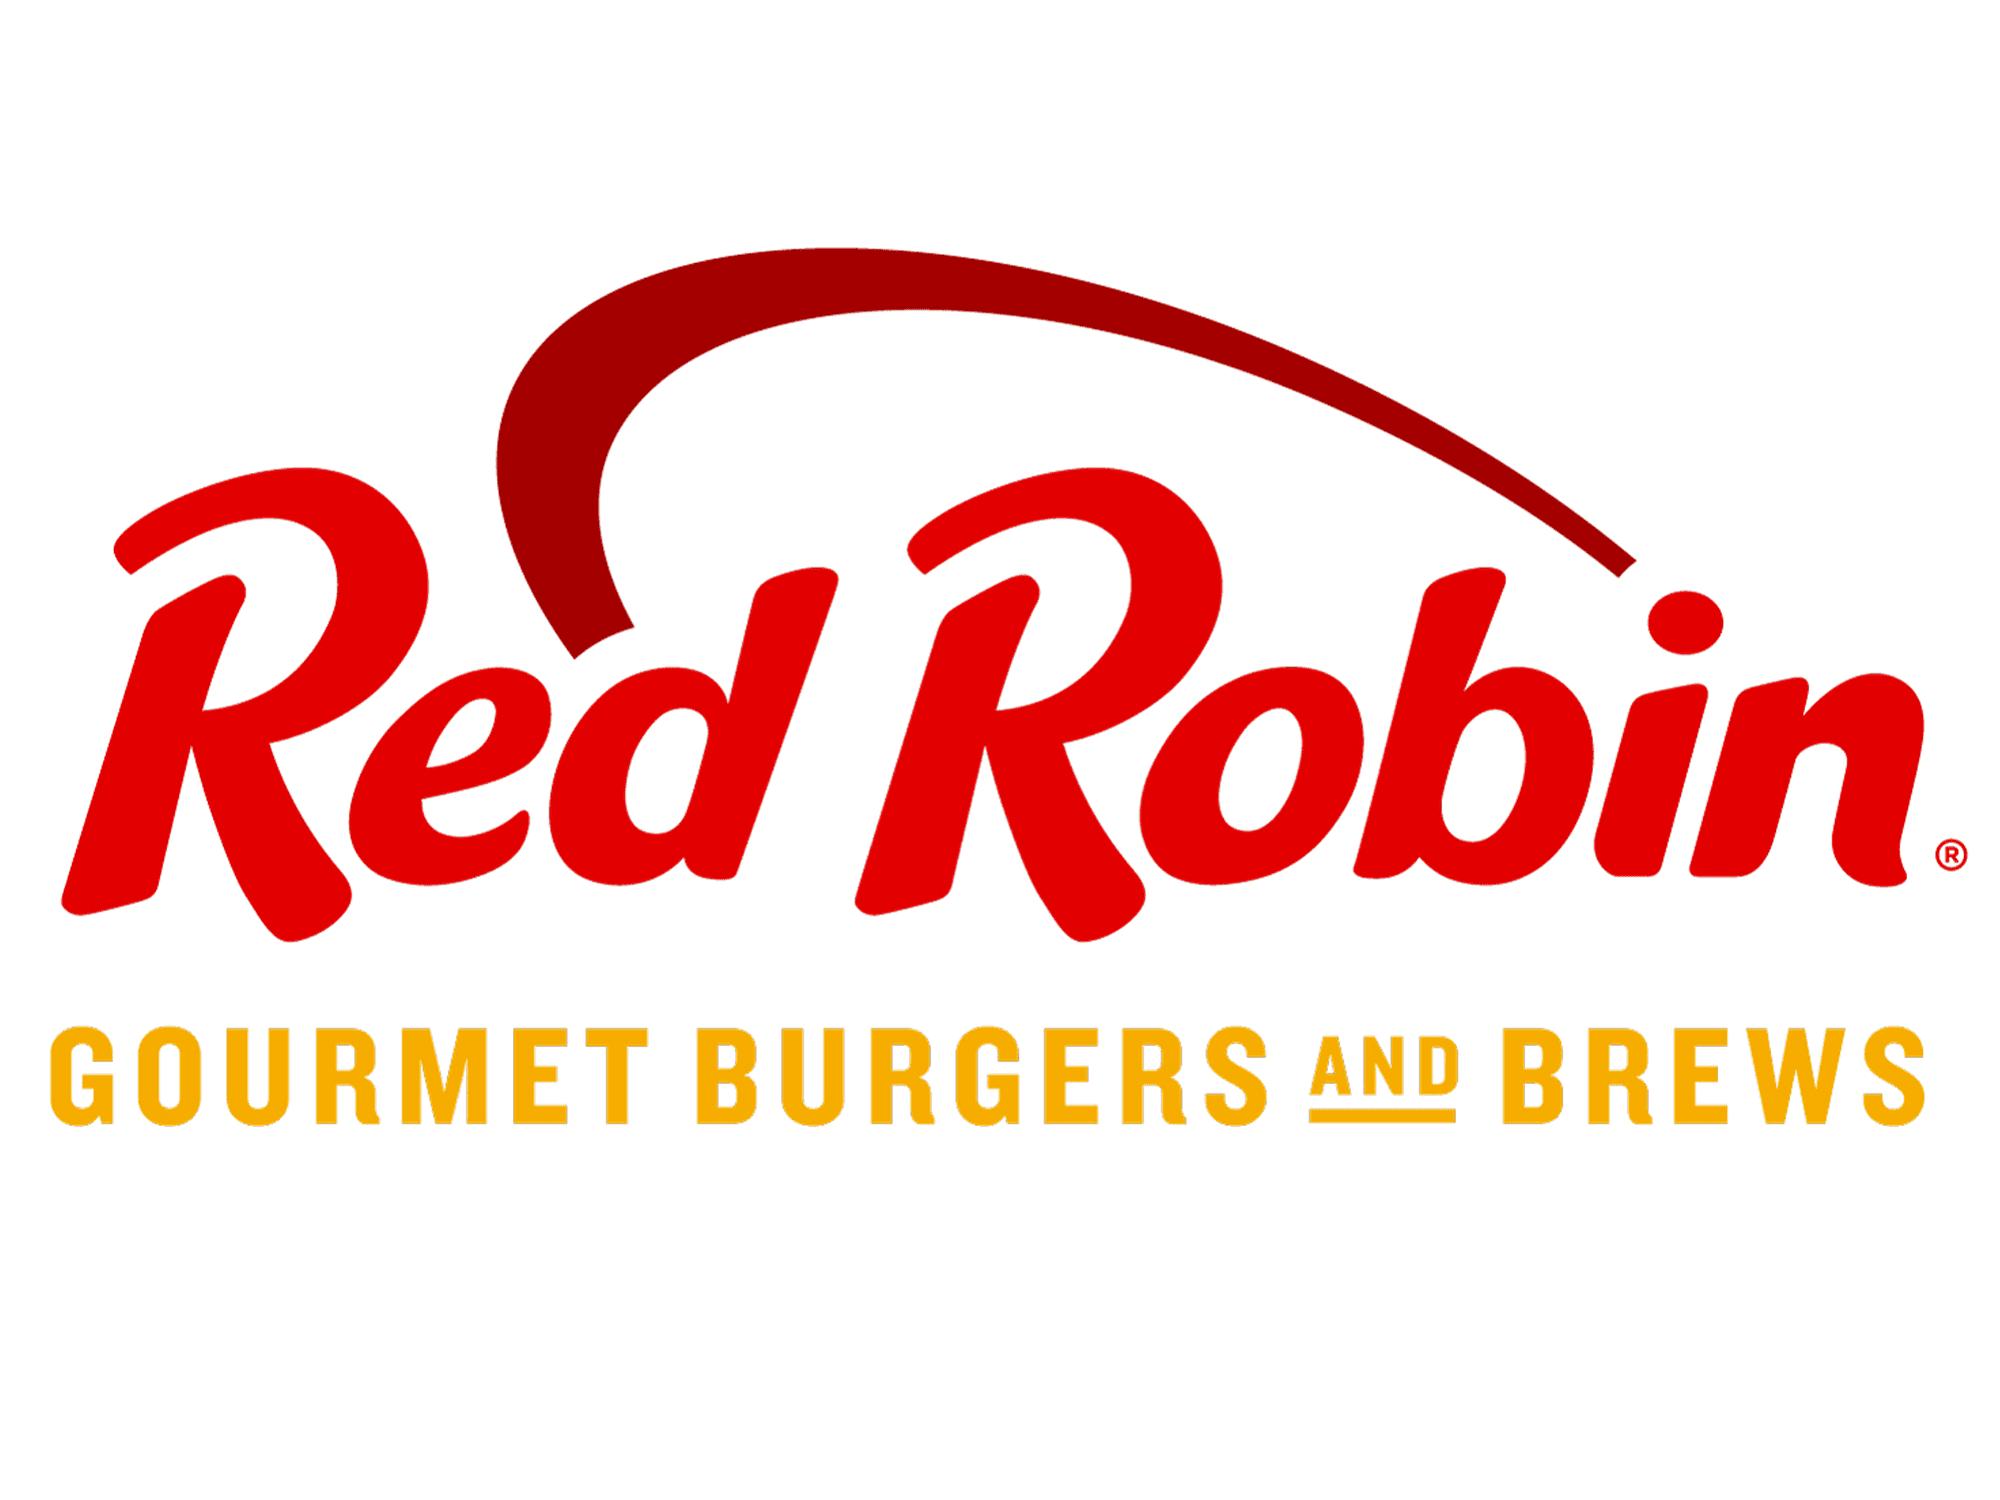 Red Robin Free Veterans Day Burger and Fries